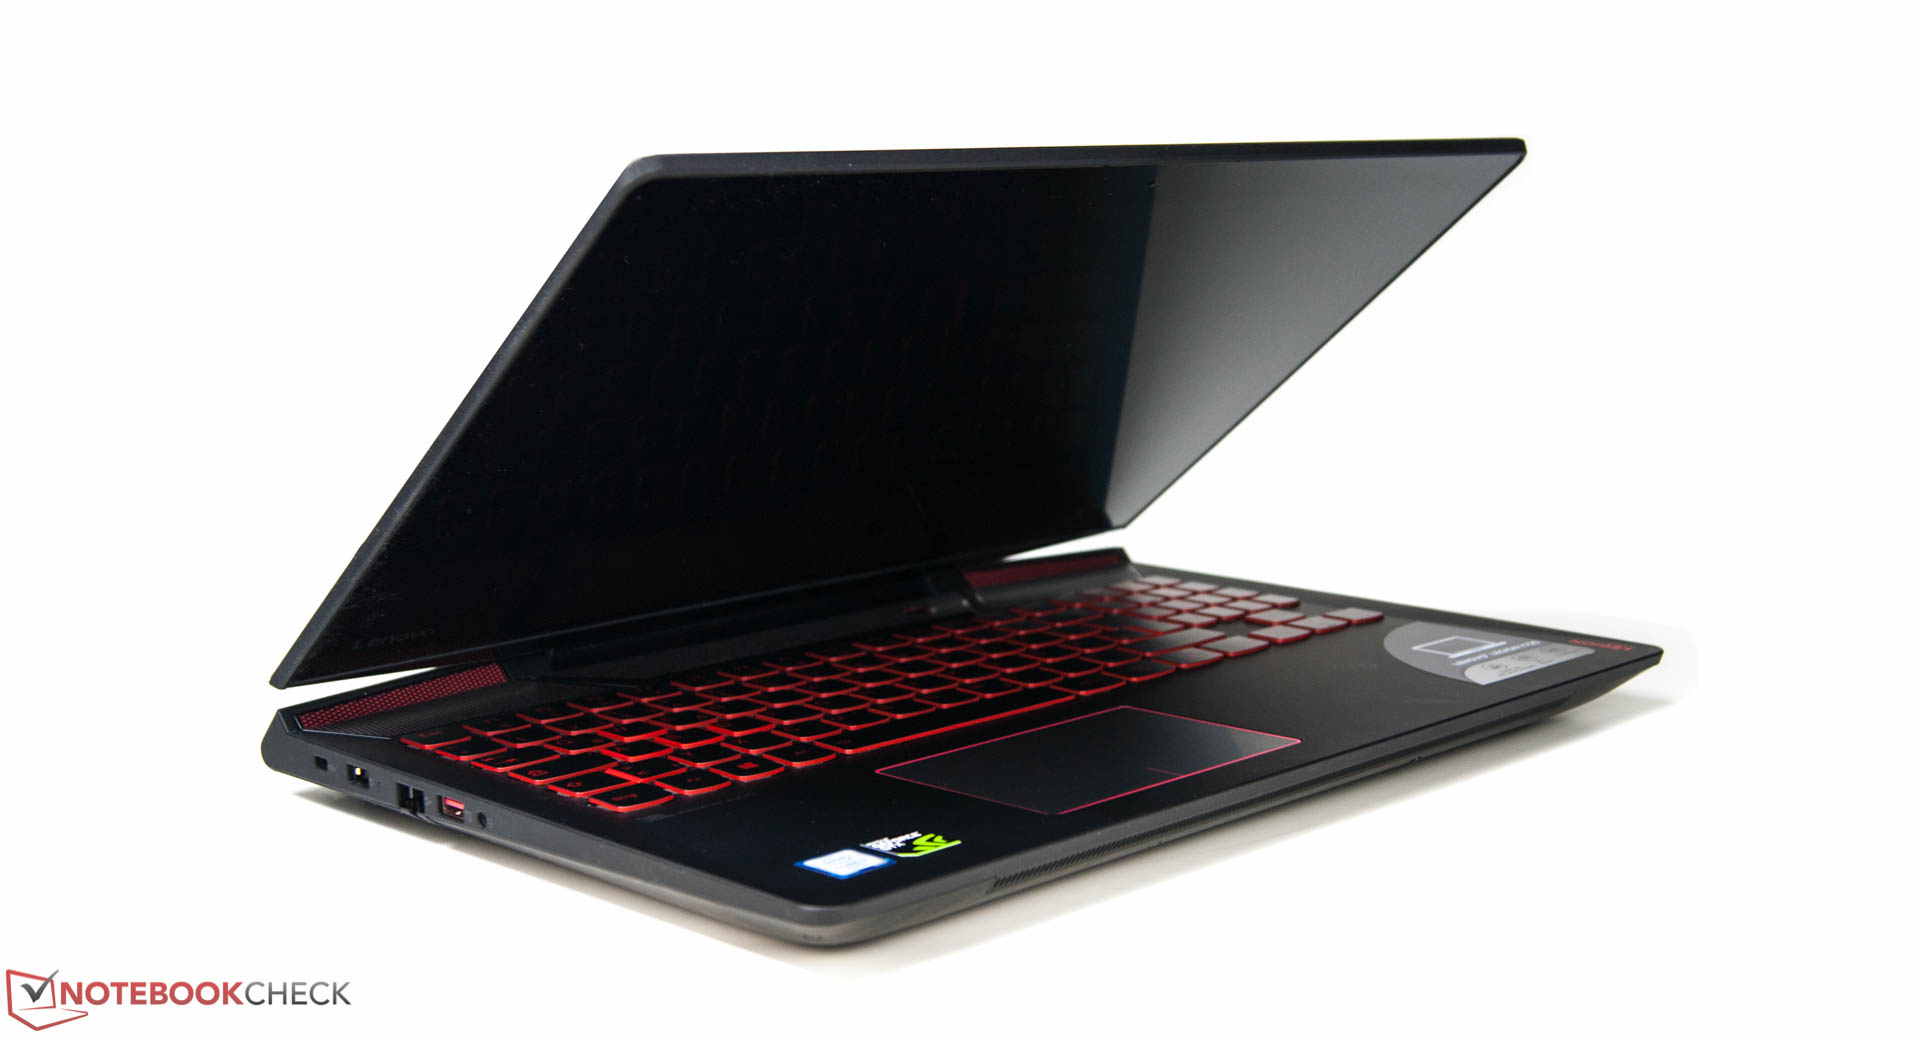 Lenovo Legion Y720 7700hq Full Hd Gtx 1060 Laptop